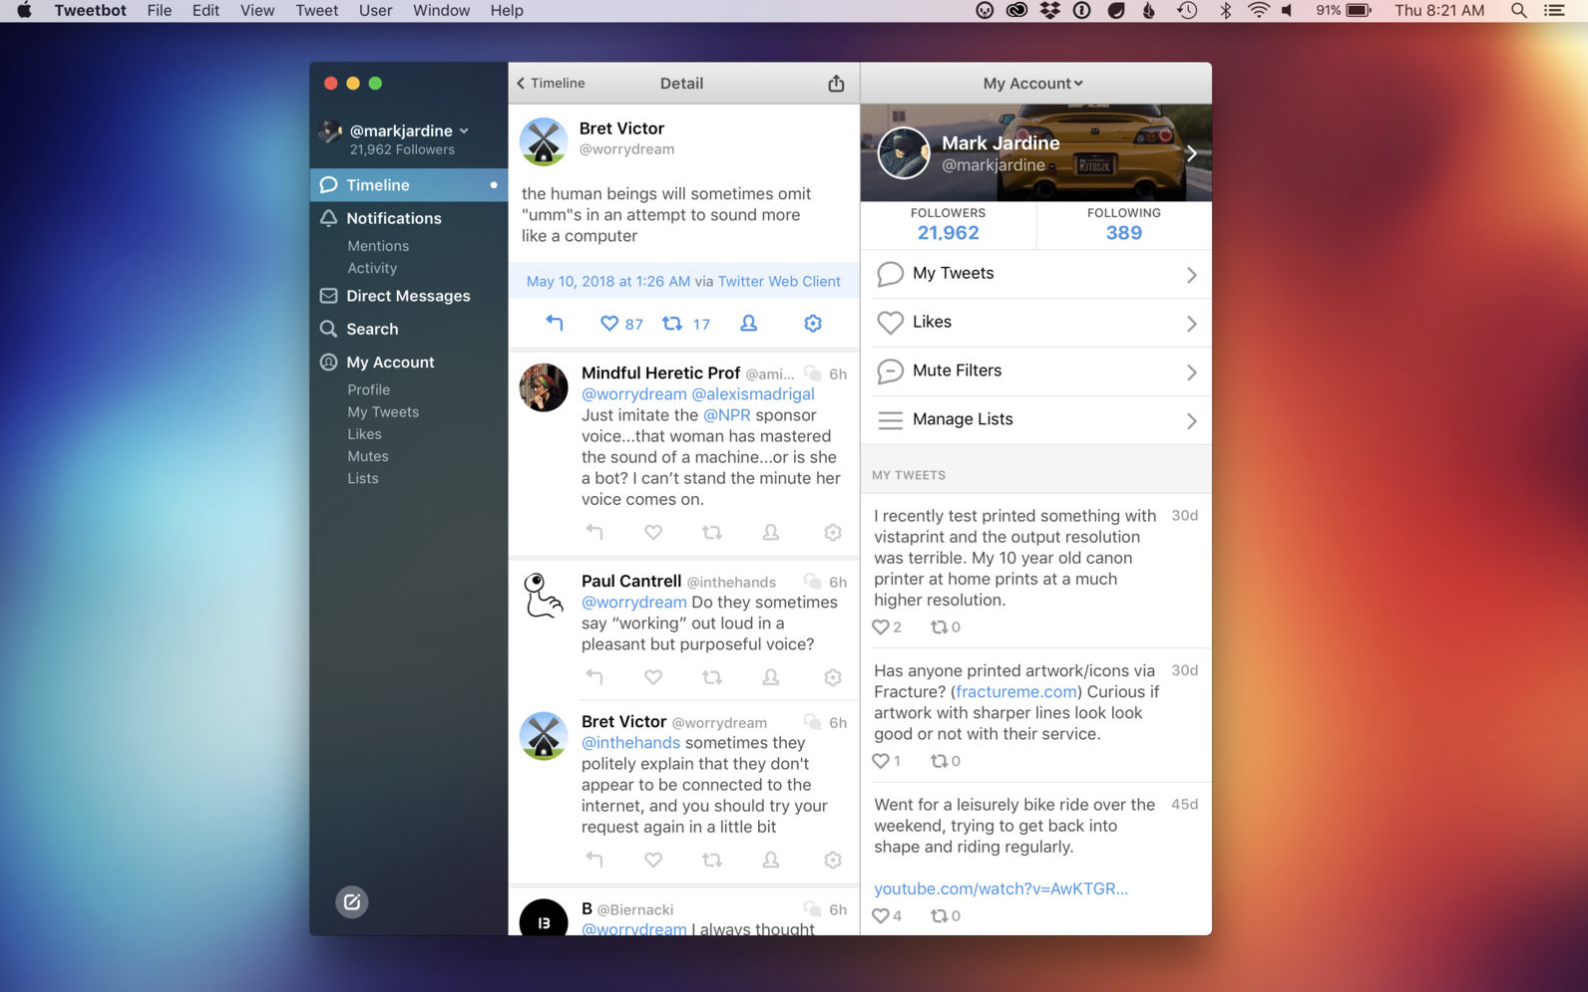 Tweetbot 3 arrives with a new look…and a reprieve from Twitter's API